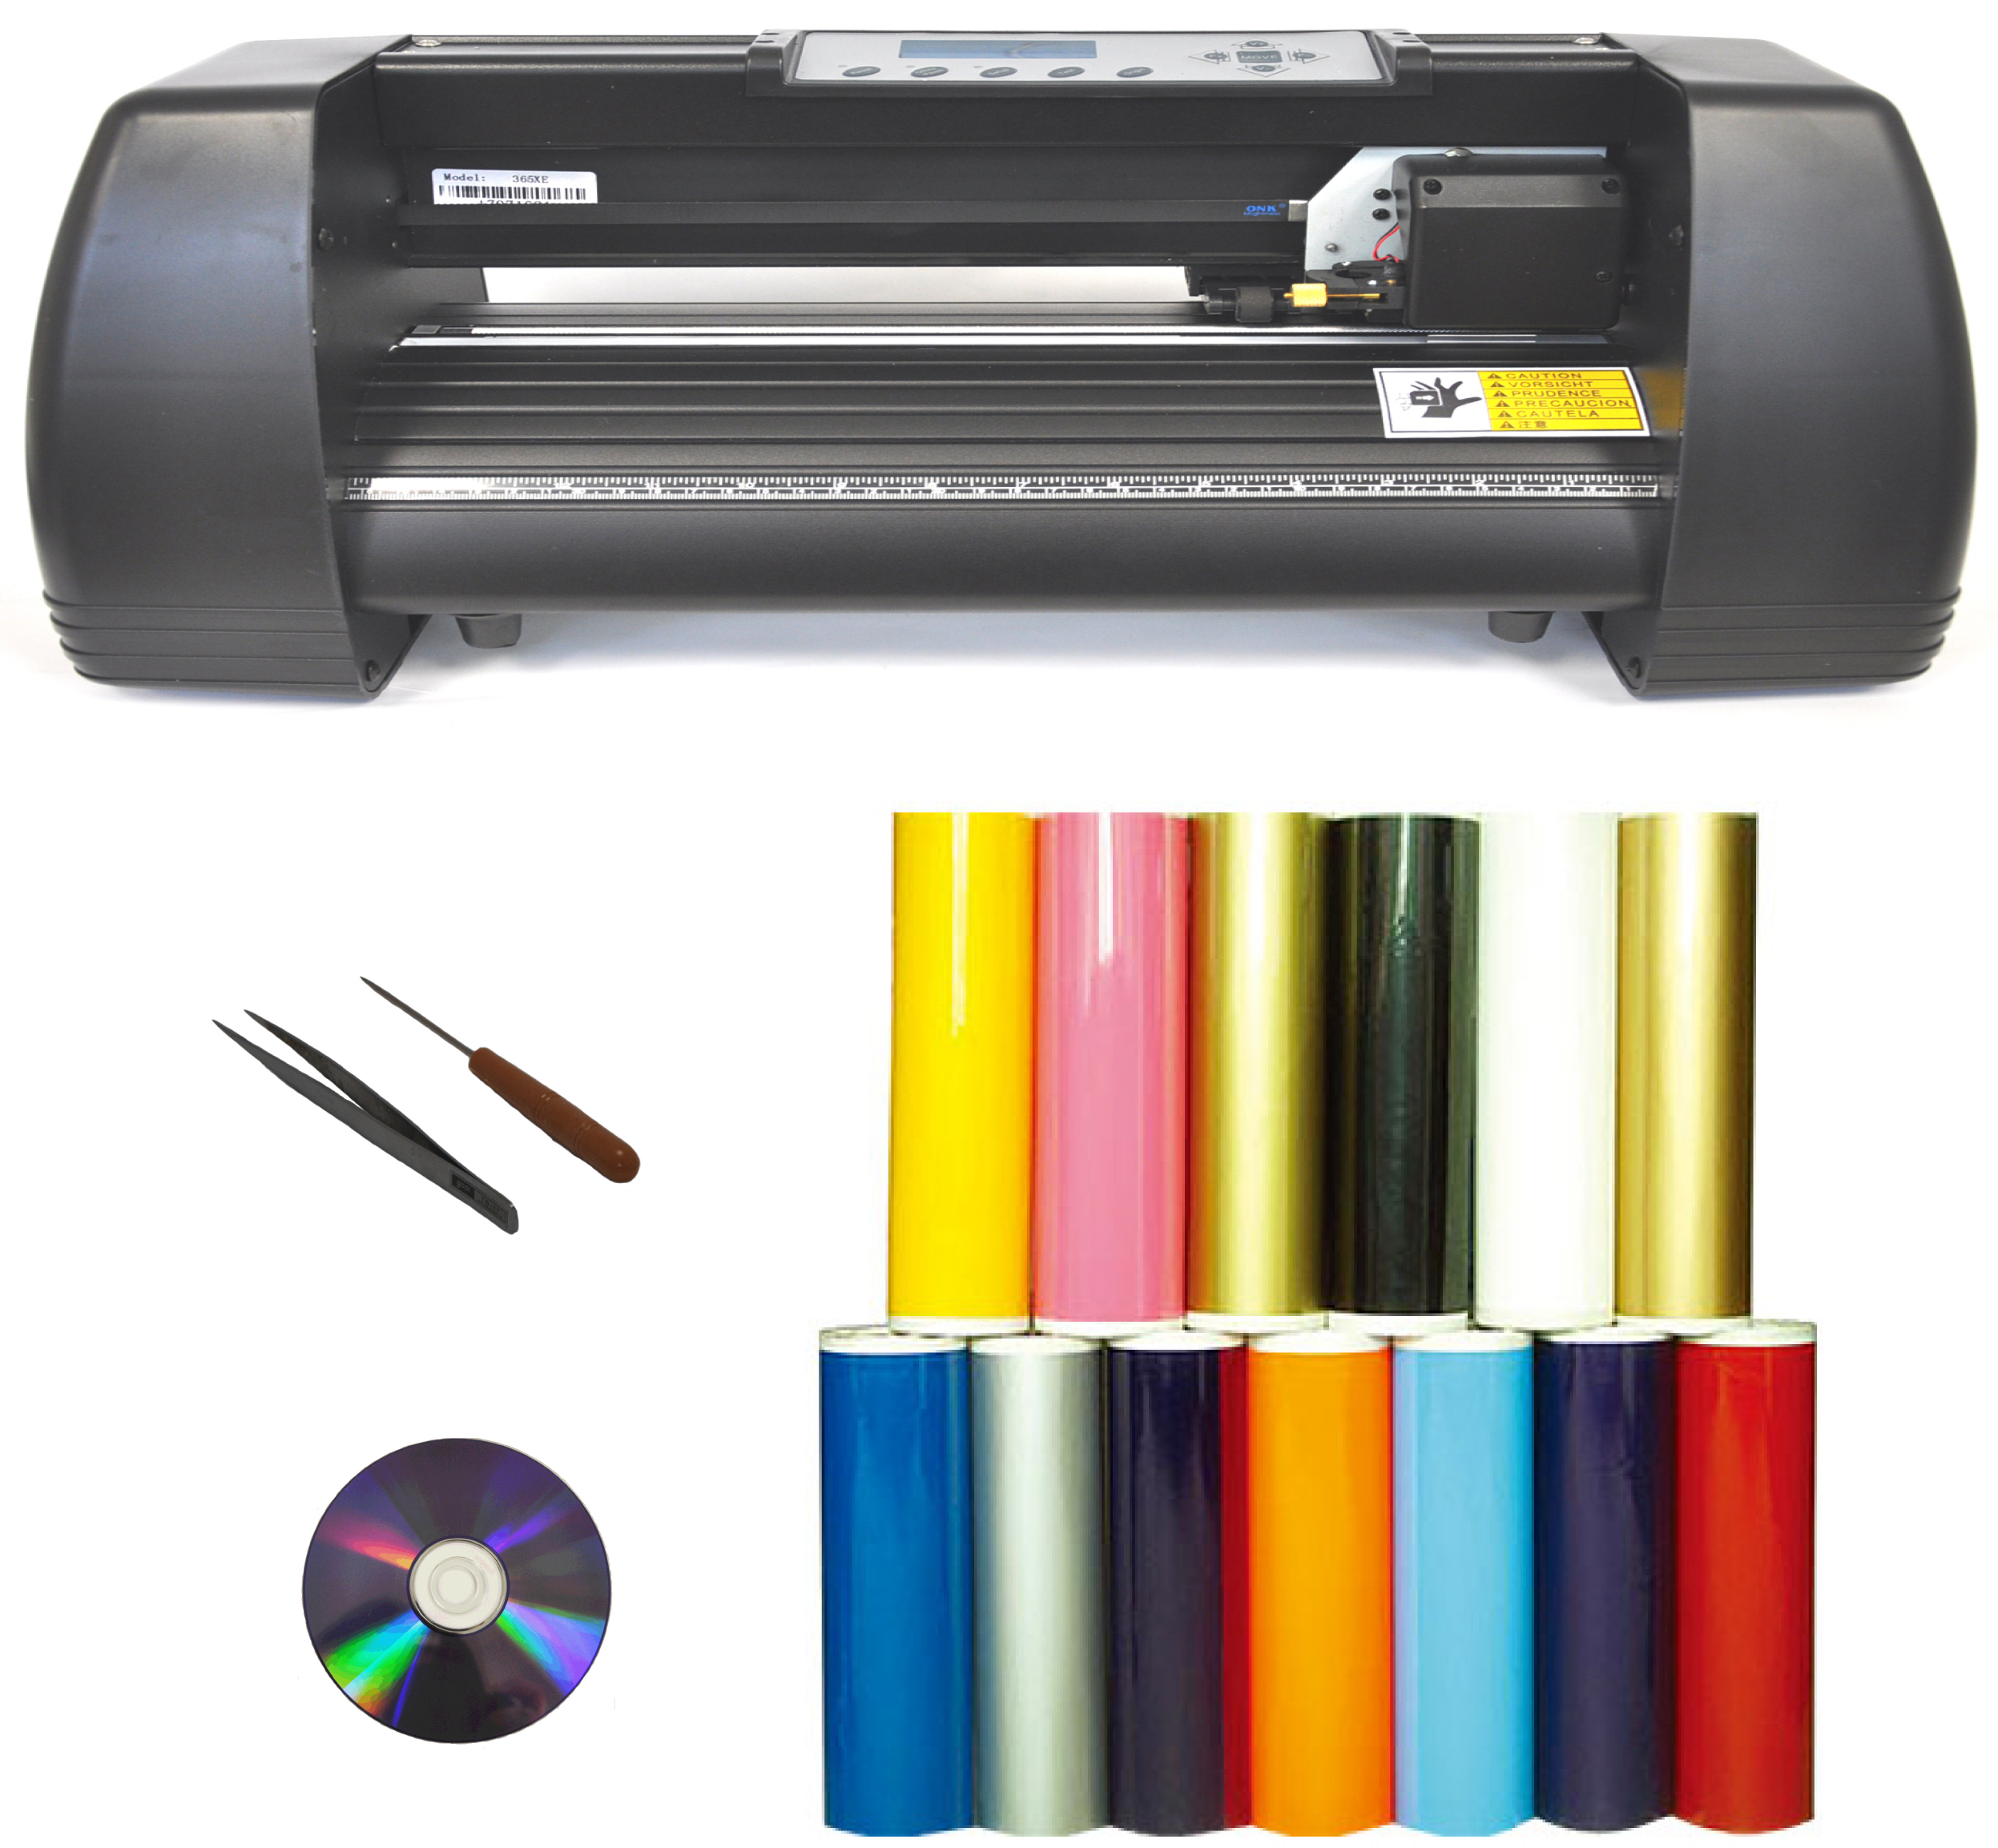 "14"" 500g force Laser Point Vinyl Cutter Plotter Package"